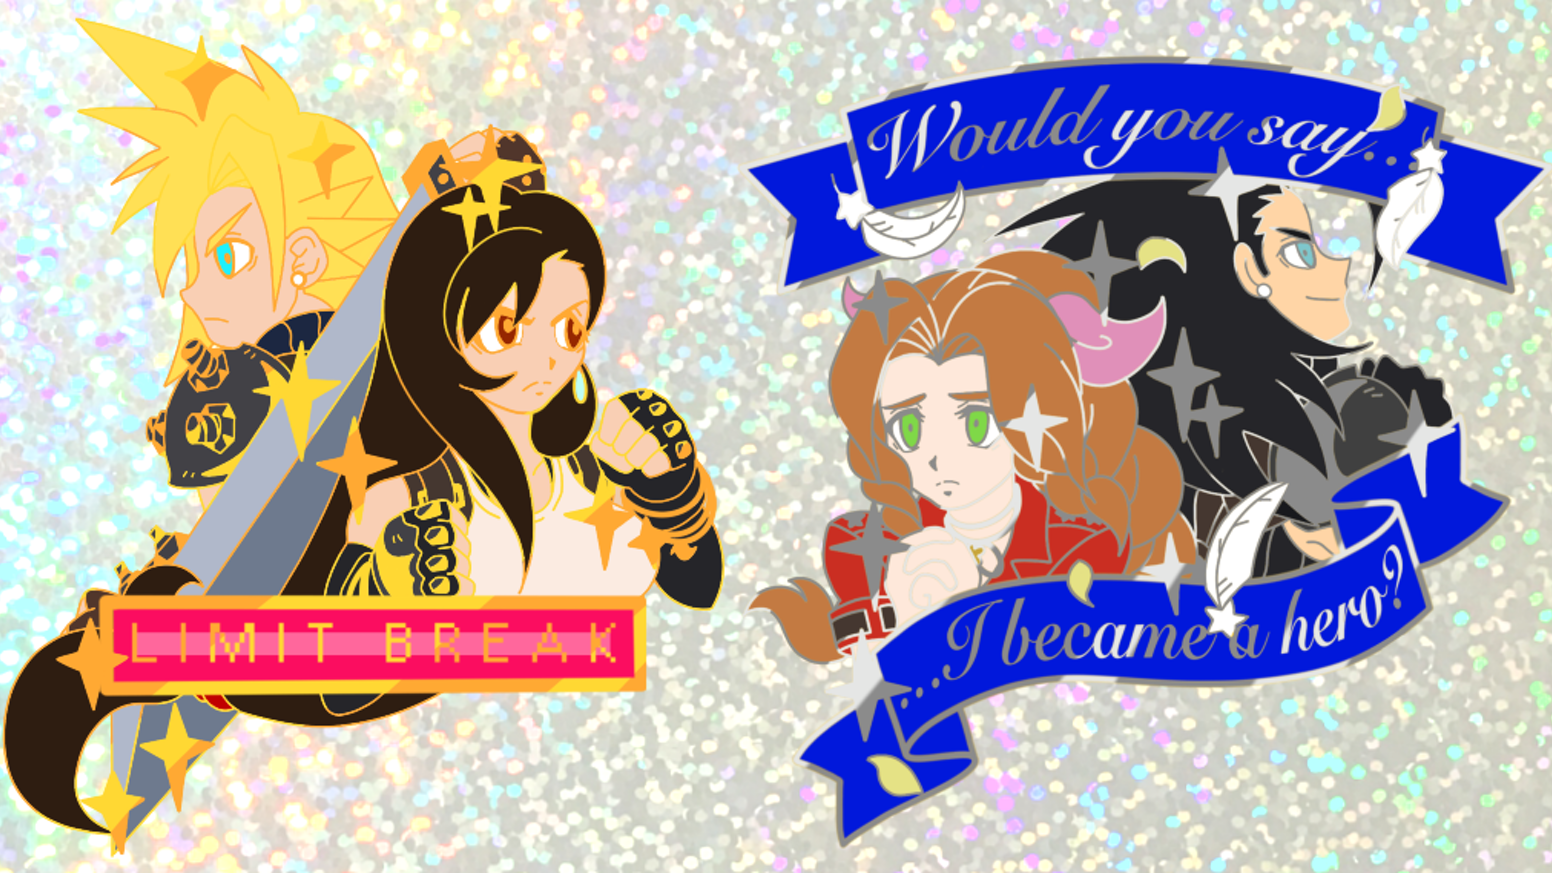 ✨ Celebrate the remake of Final Fantasy VII releasing in 2020 with these two pins! ✨